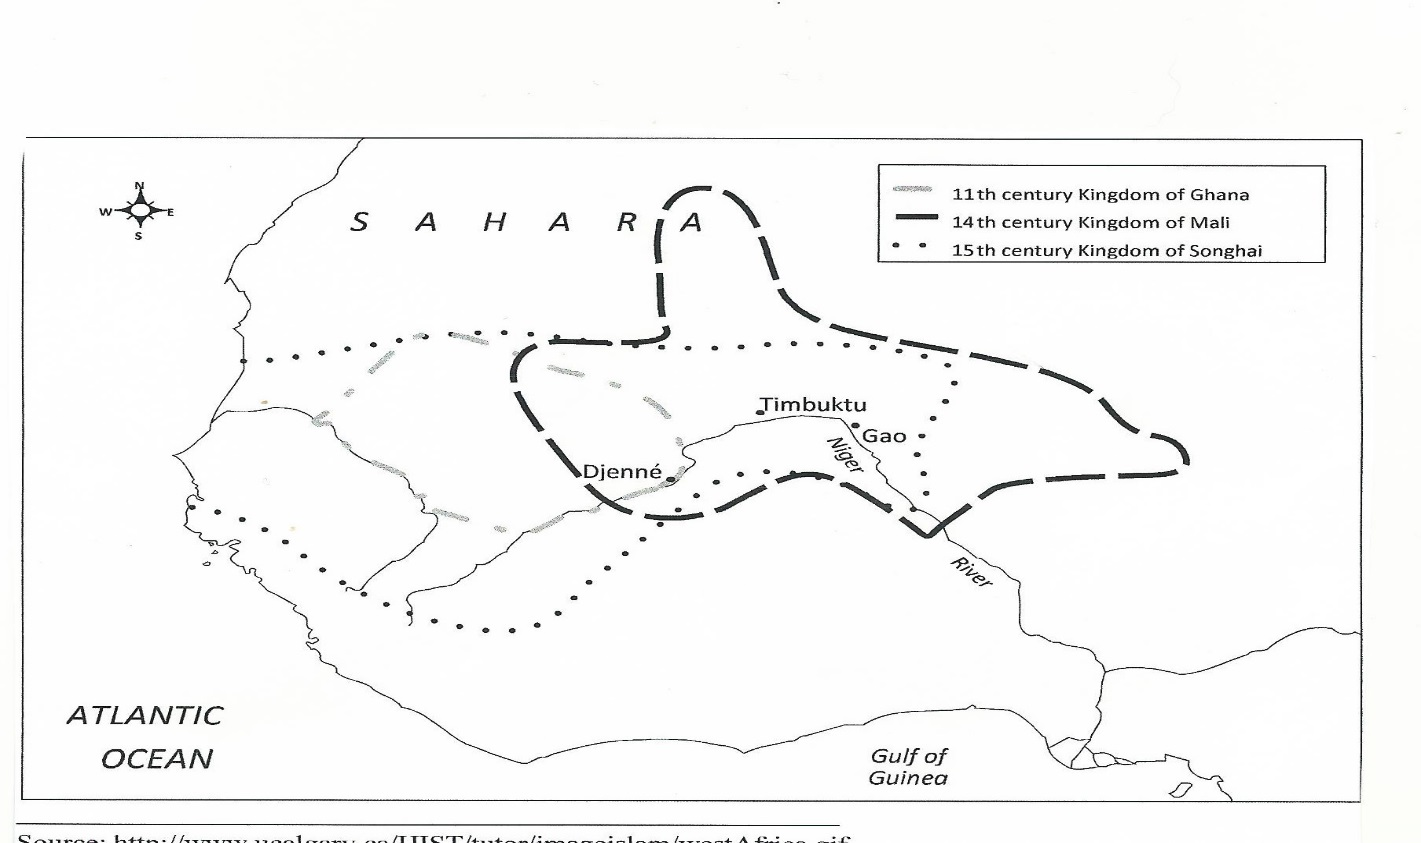 Songhai Africa Map.Chapter 13 Essay Interpreting Political Maps Ghana Mali And Songhai